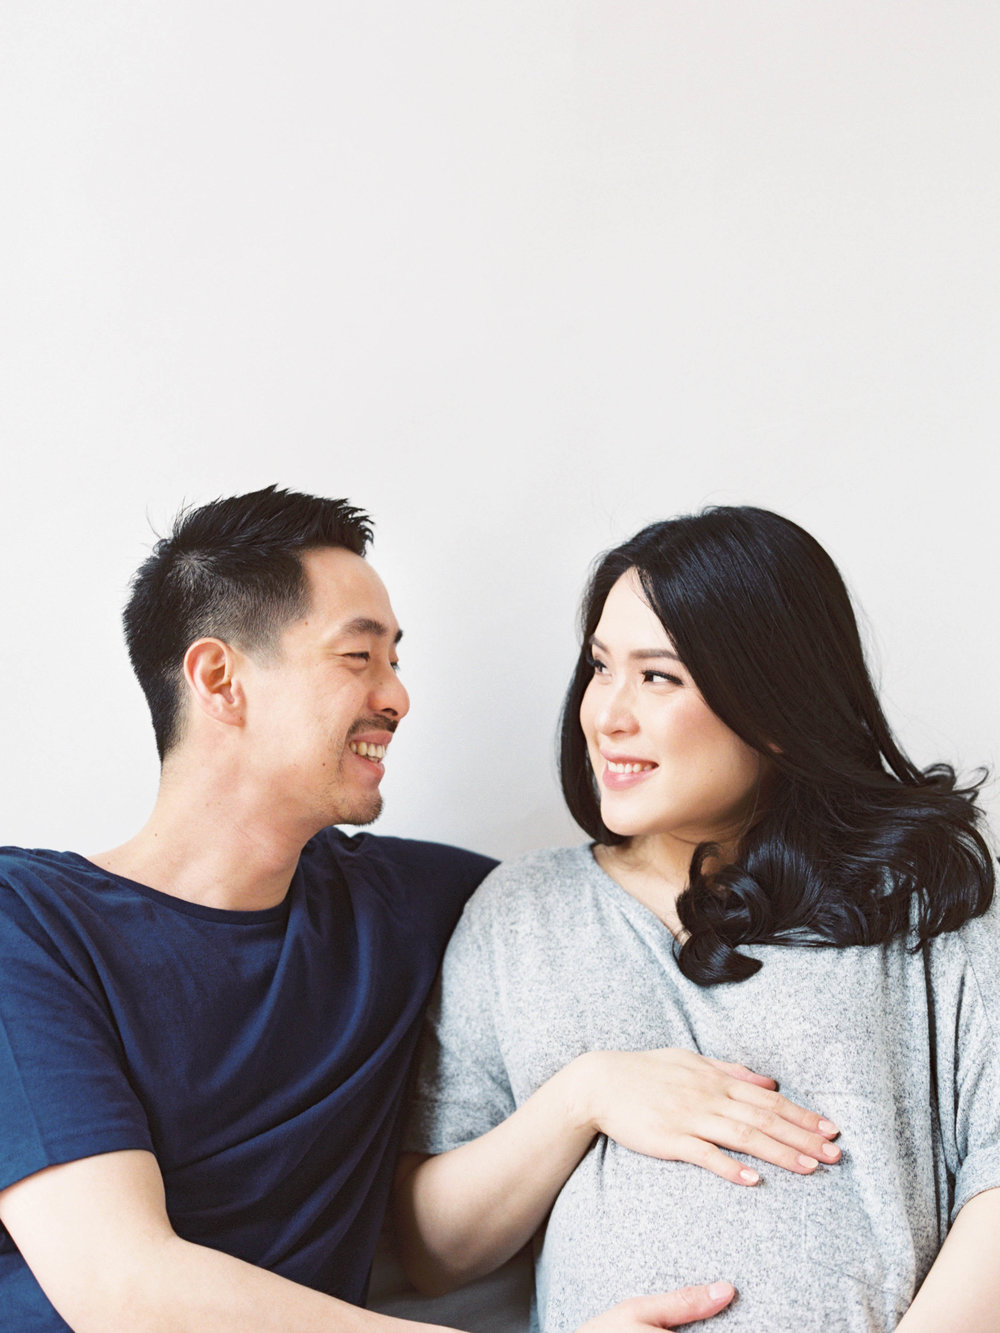 Gaby and Tim-Relaxed-Airy-Simple-Maternity Portrait Photoshoot-At Home-Jakarta-Studio June-Film Photography & Styling-6.jpg